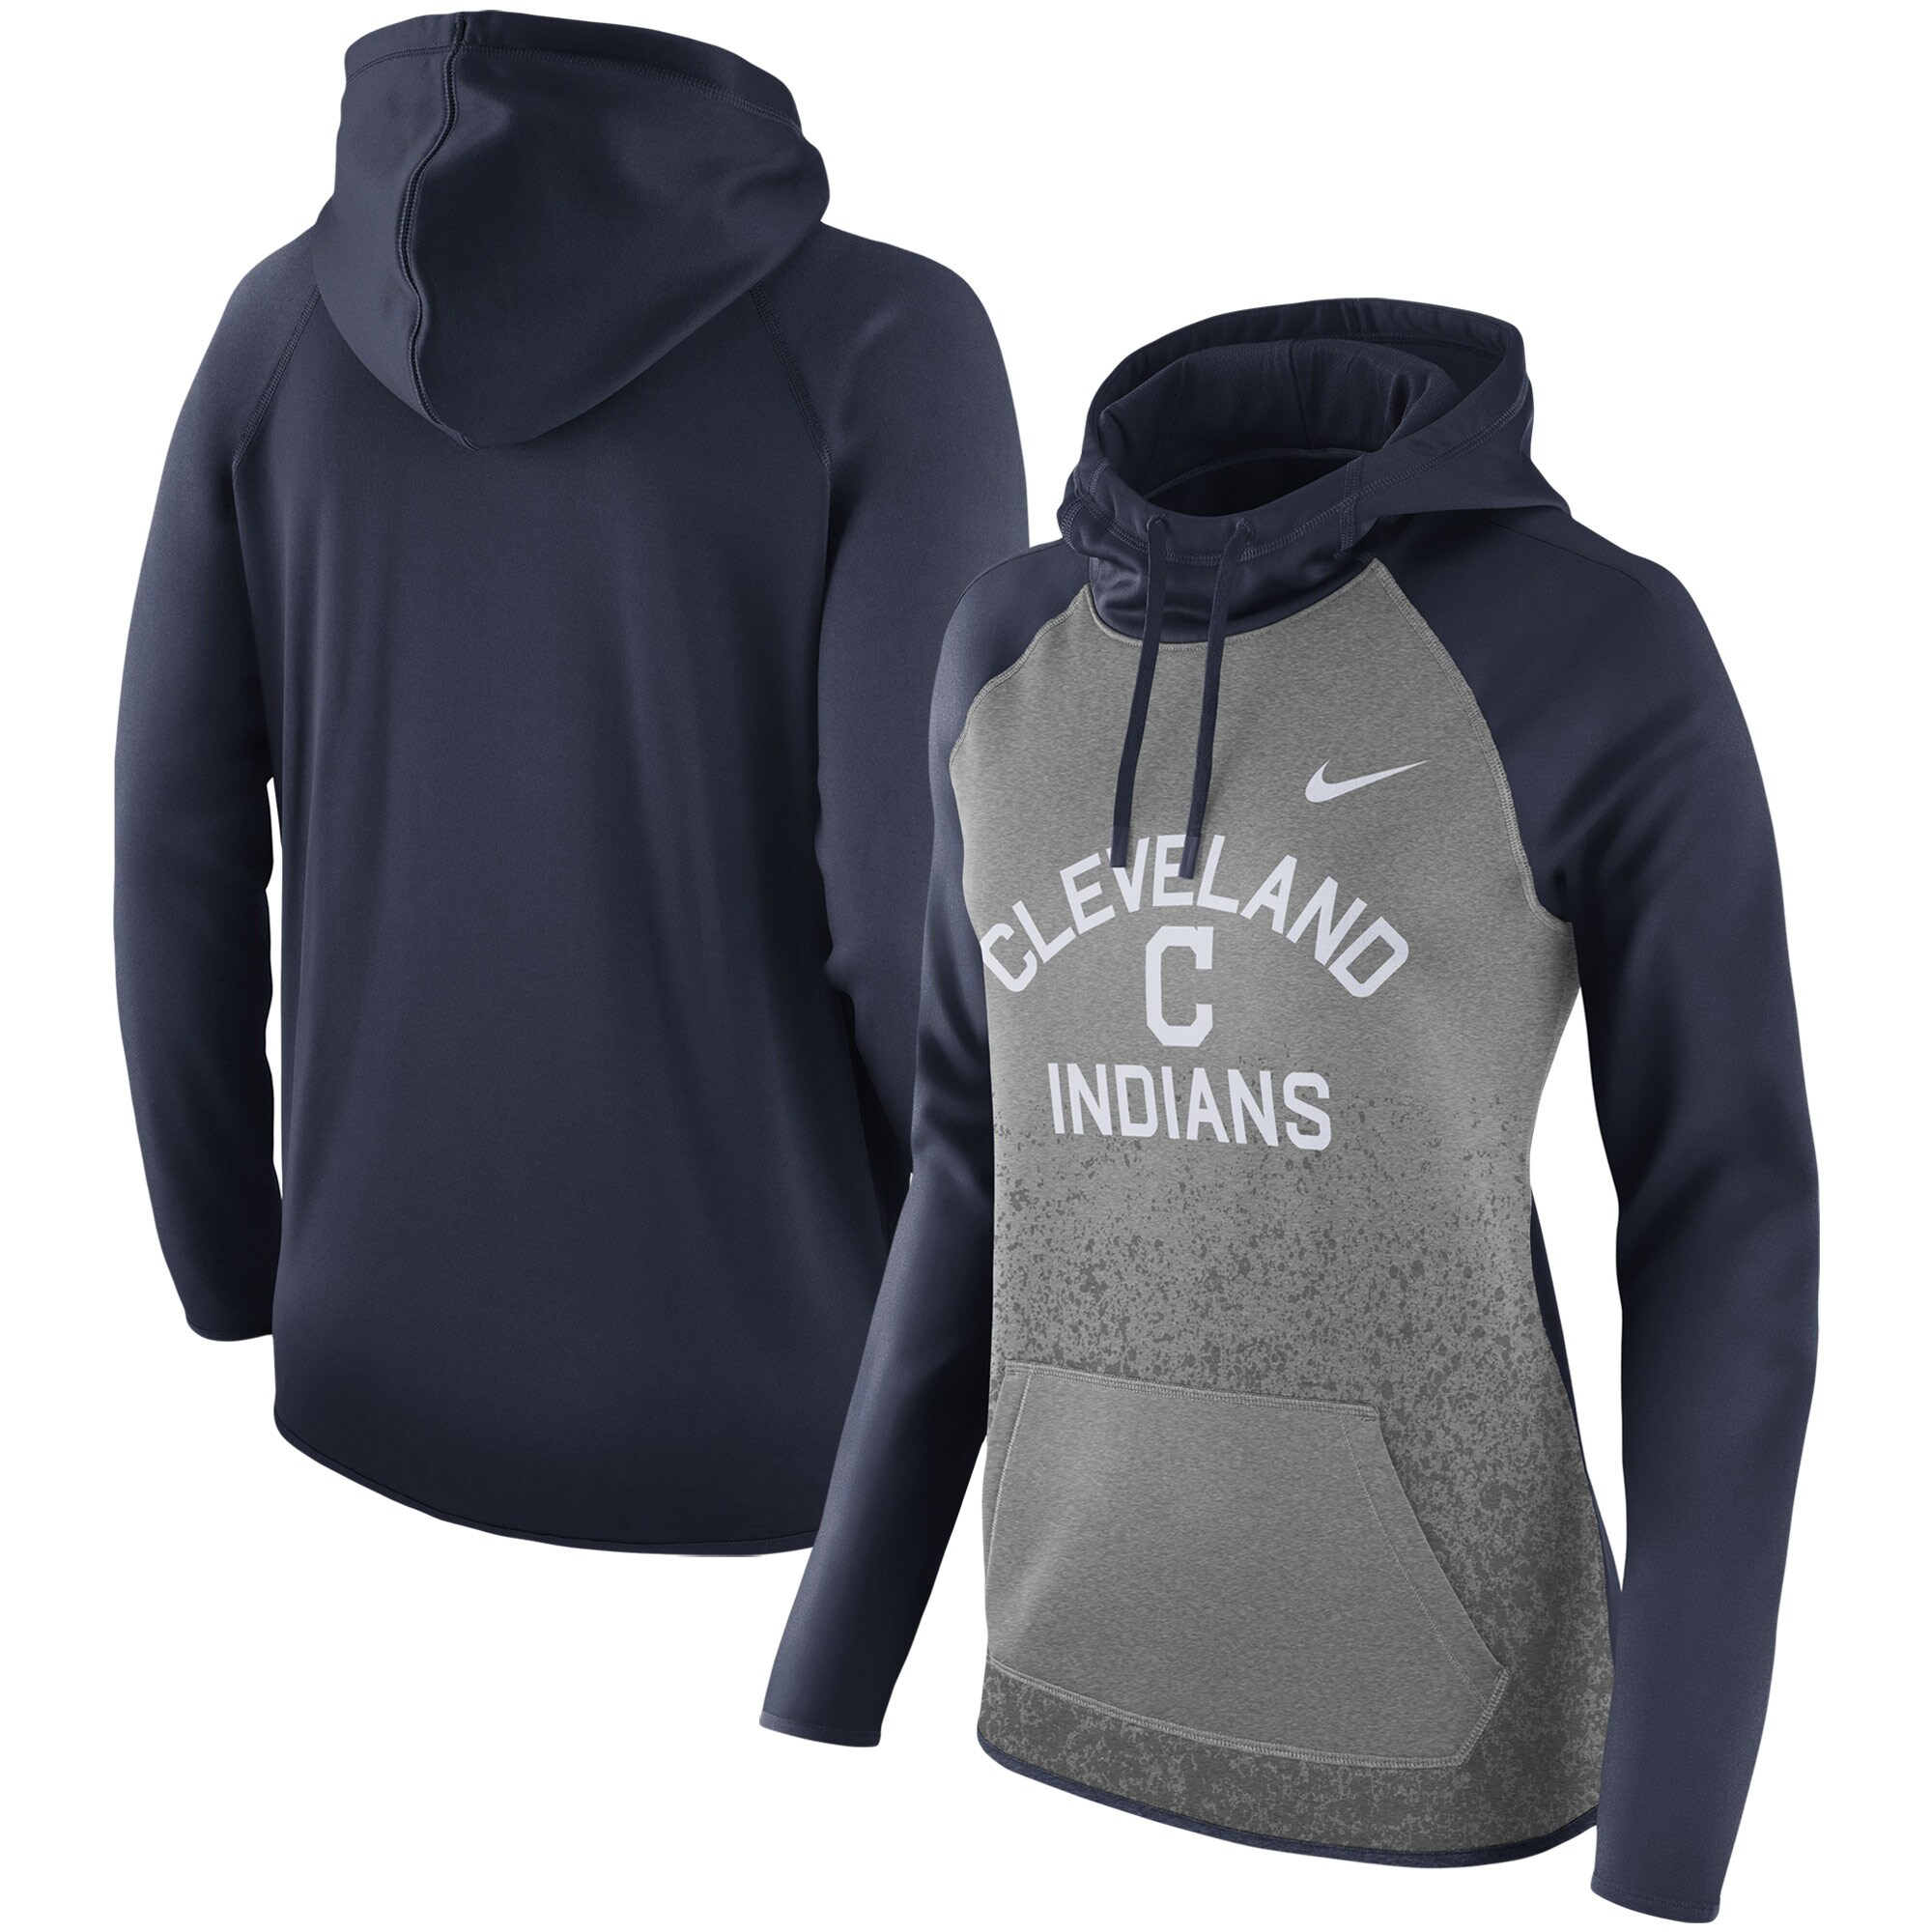 Cleveland Indians Nike Women's All-Time Therma Performance Pullover Hoodie - Dark Gray